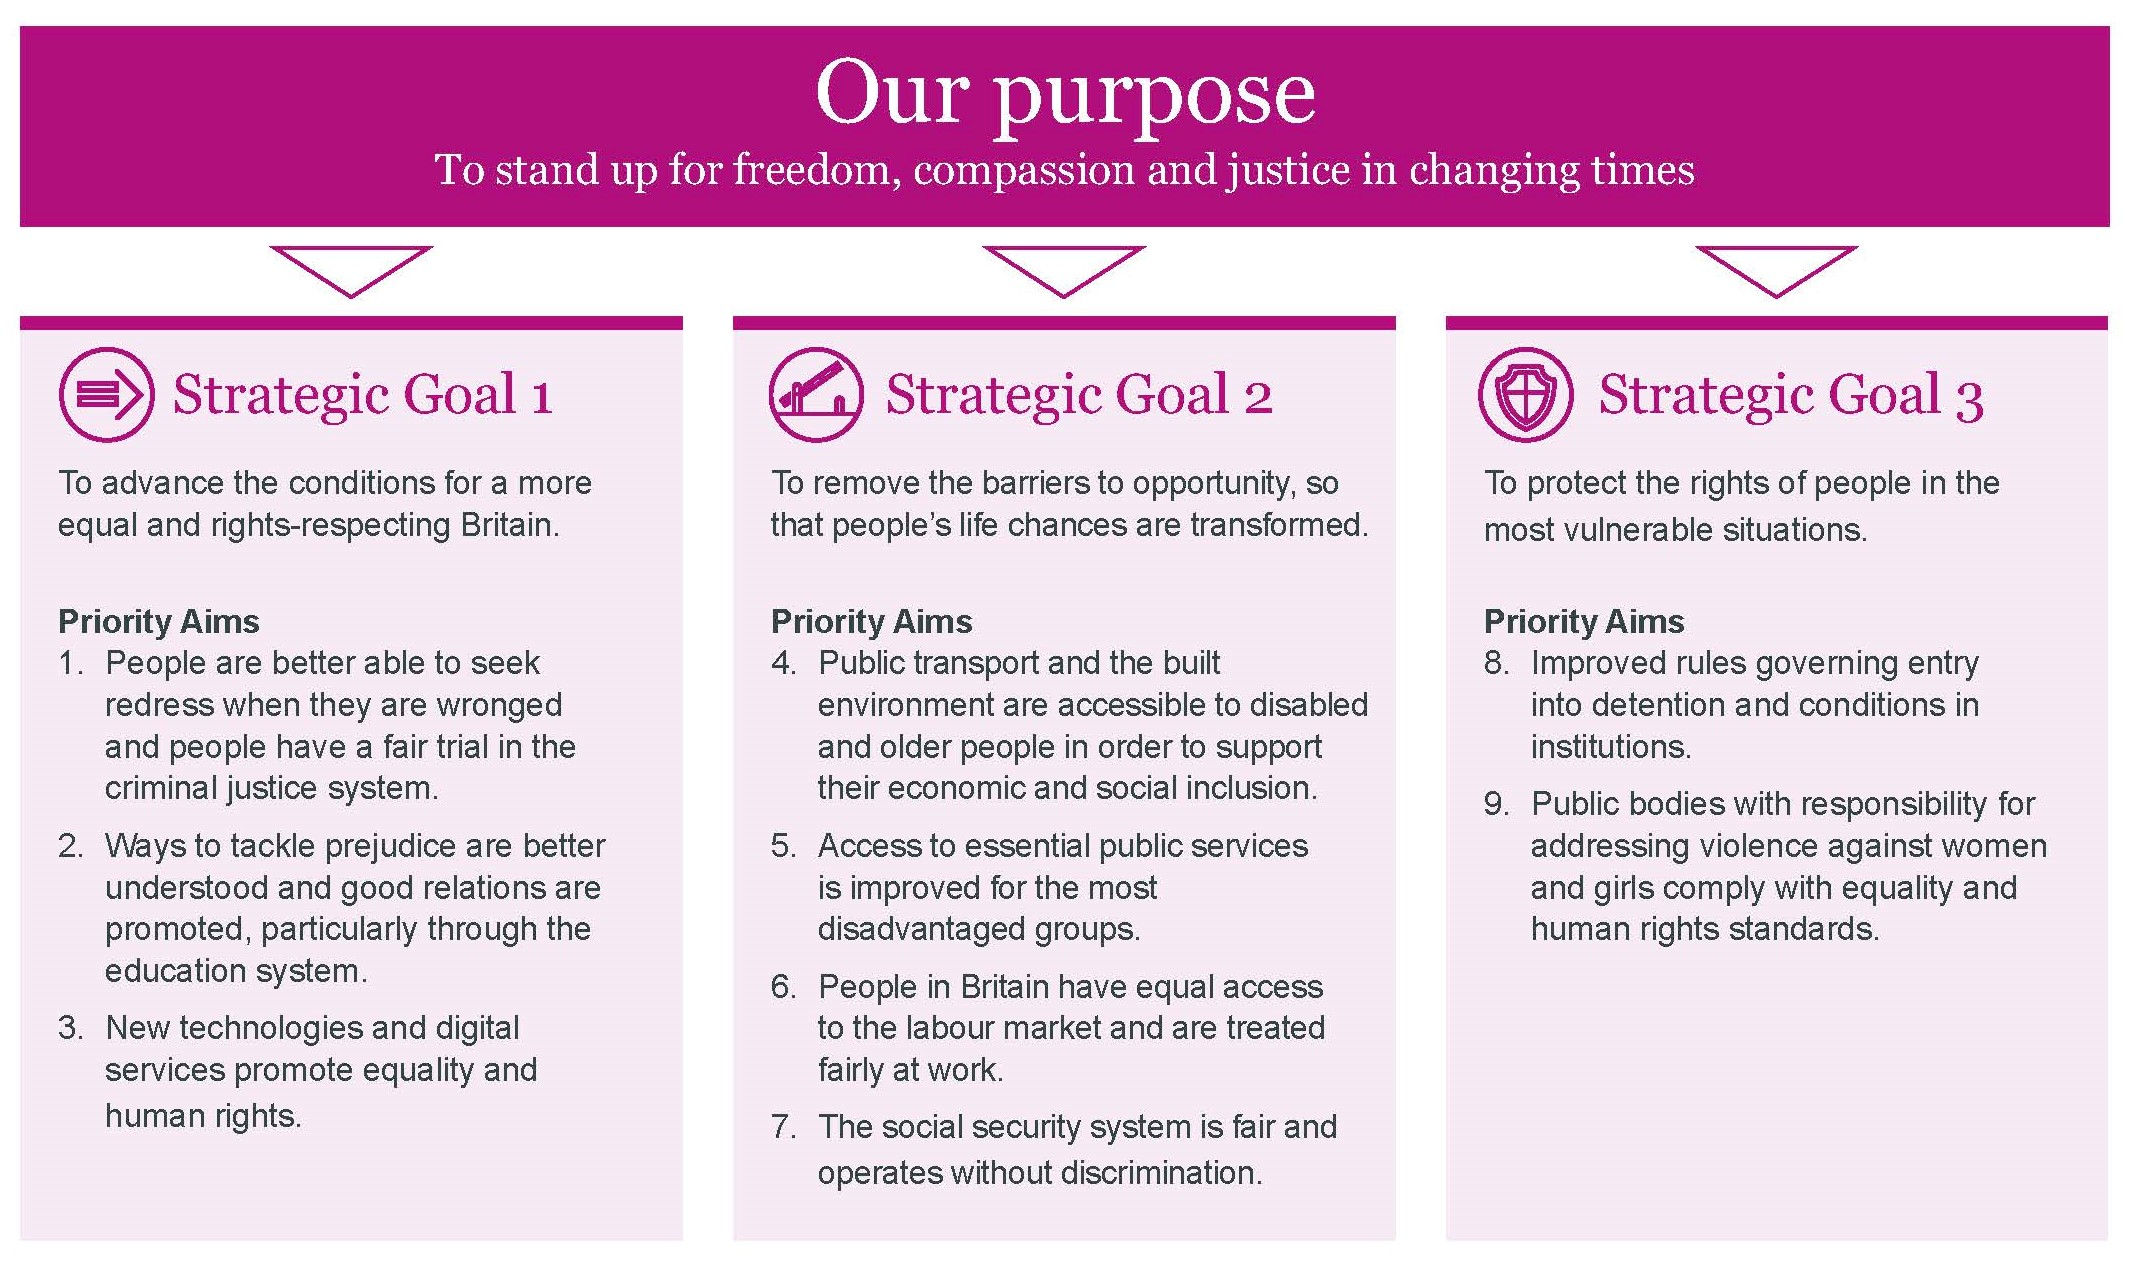 image of overview of strategic goals, available in summary document